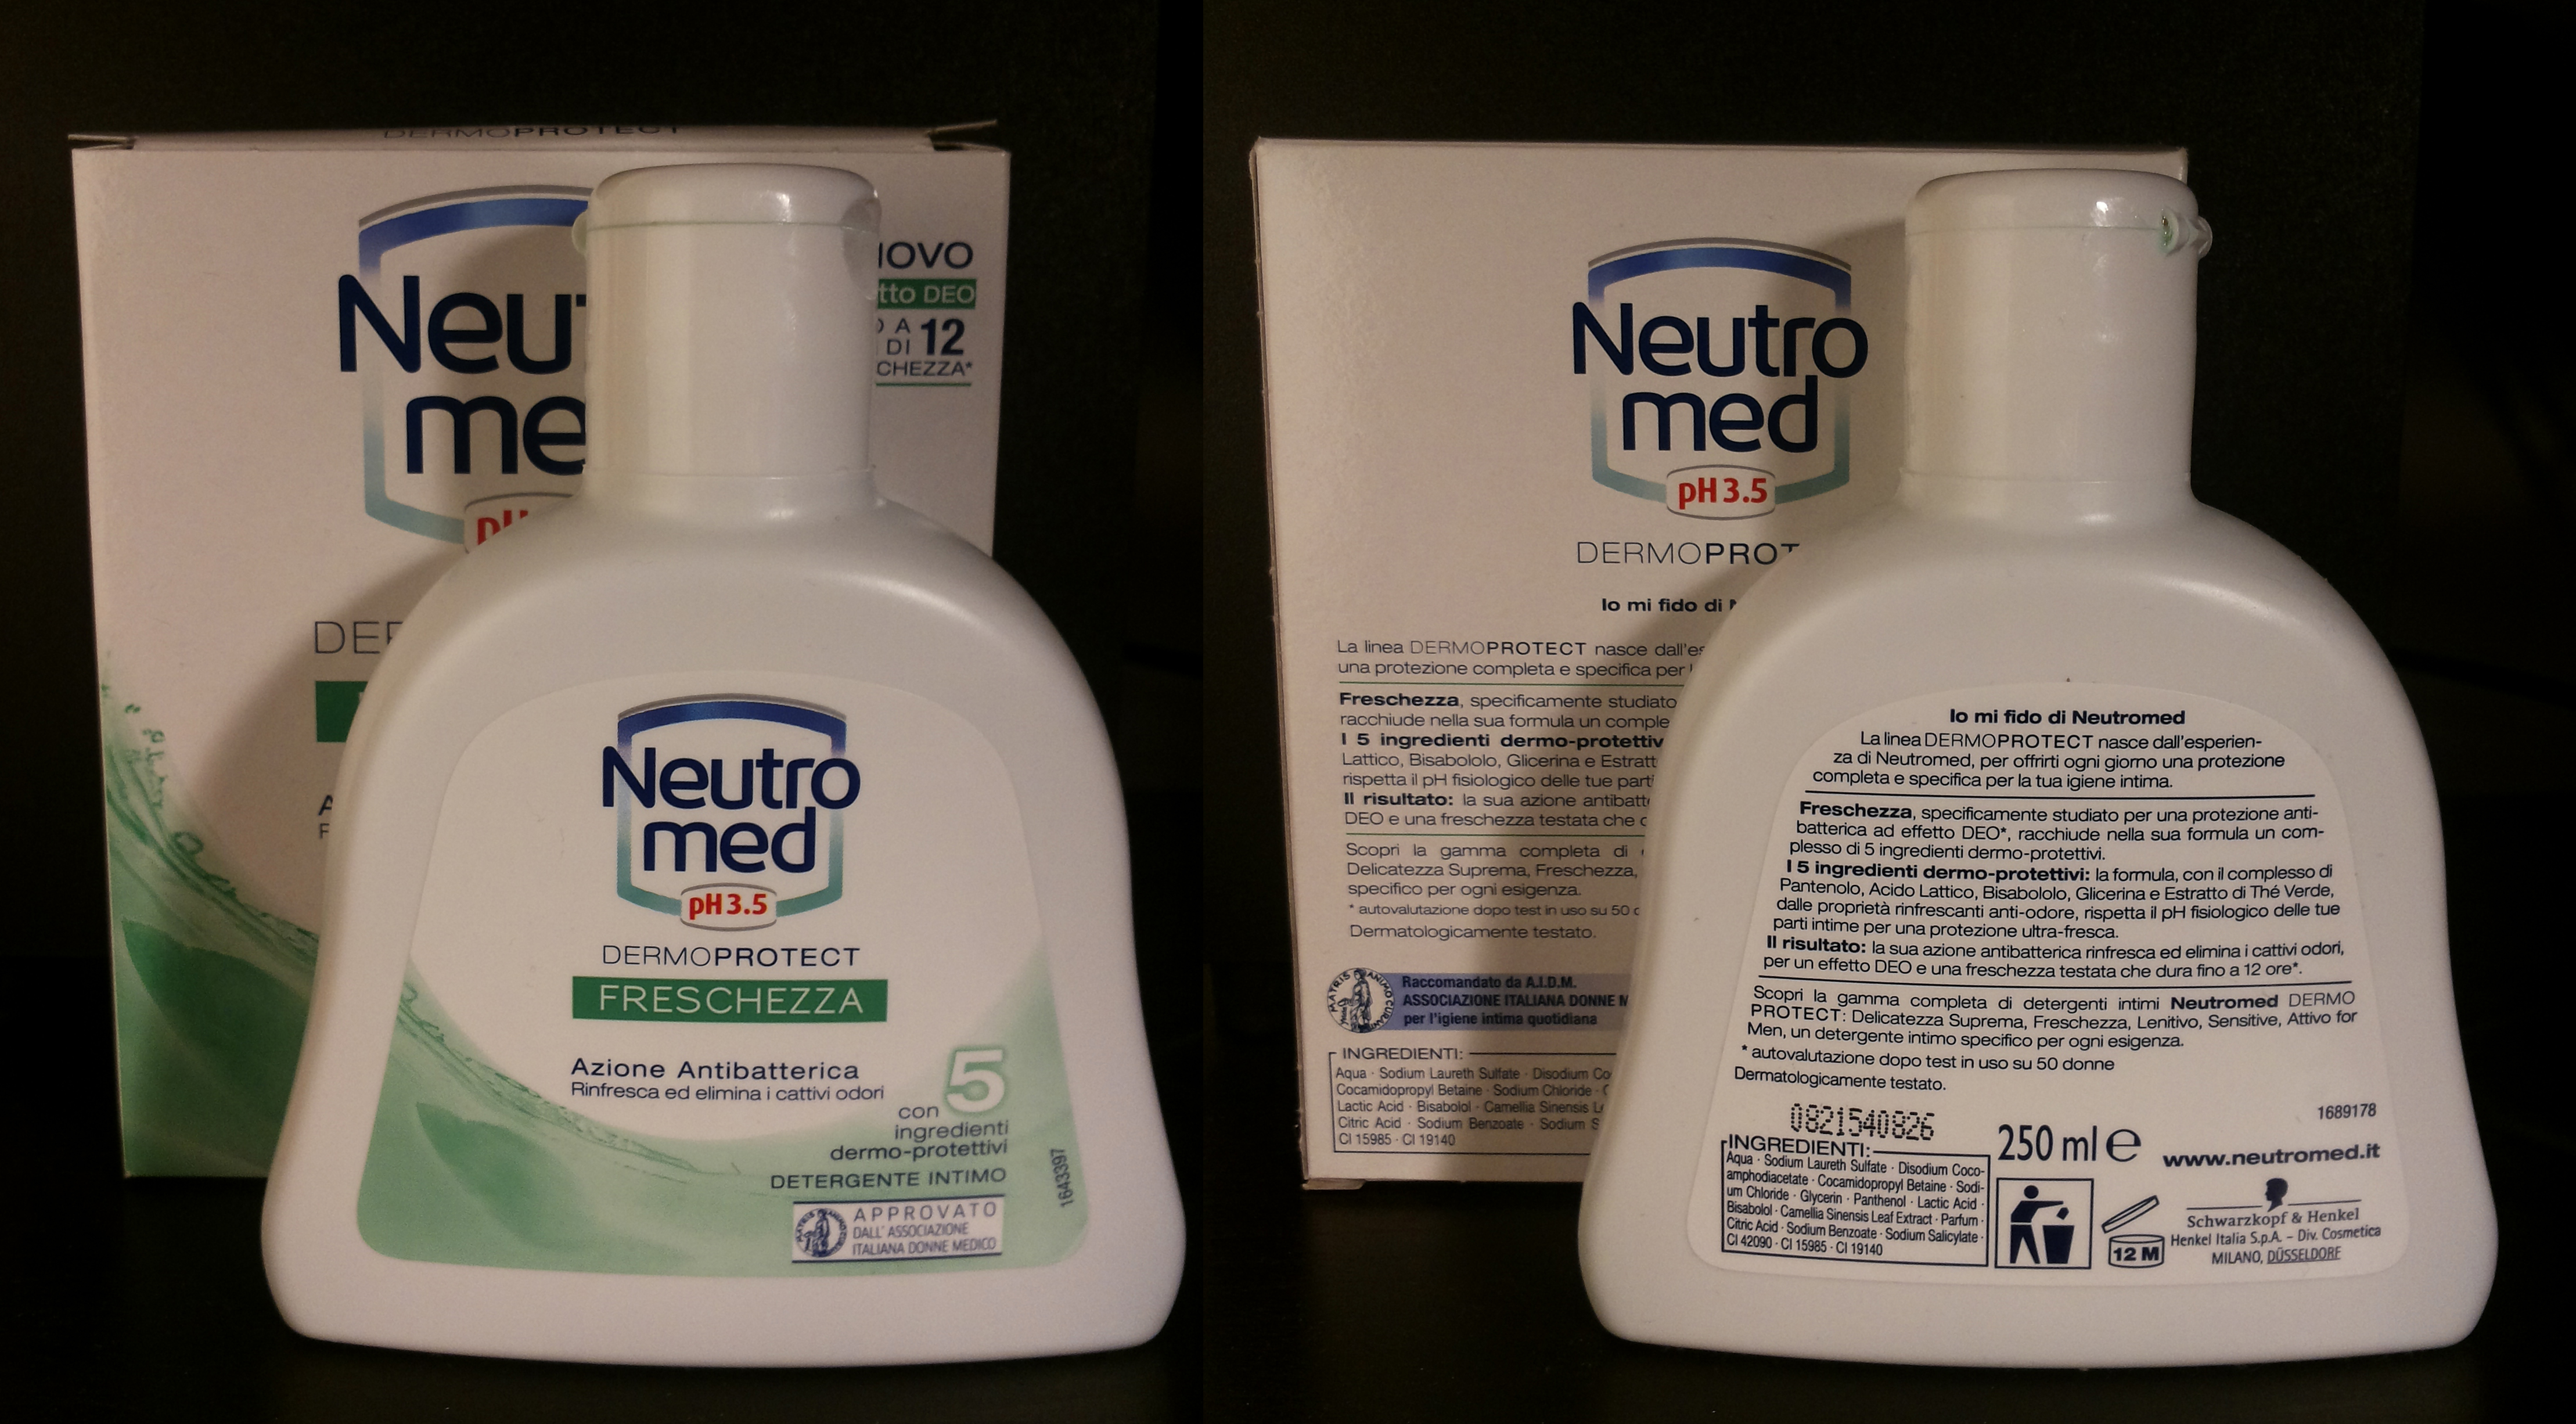 Bagno Neutromed : Neutromed bagno inci images tagged with neutromed on instagram